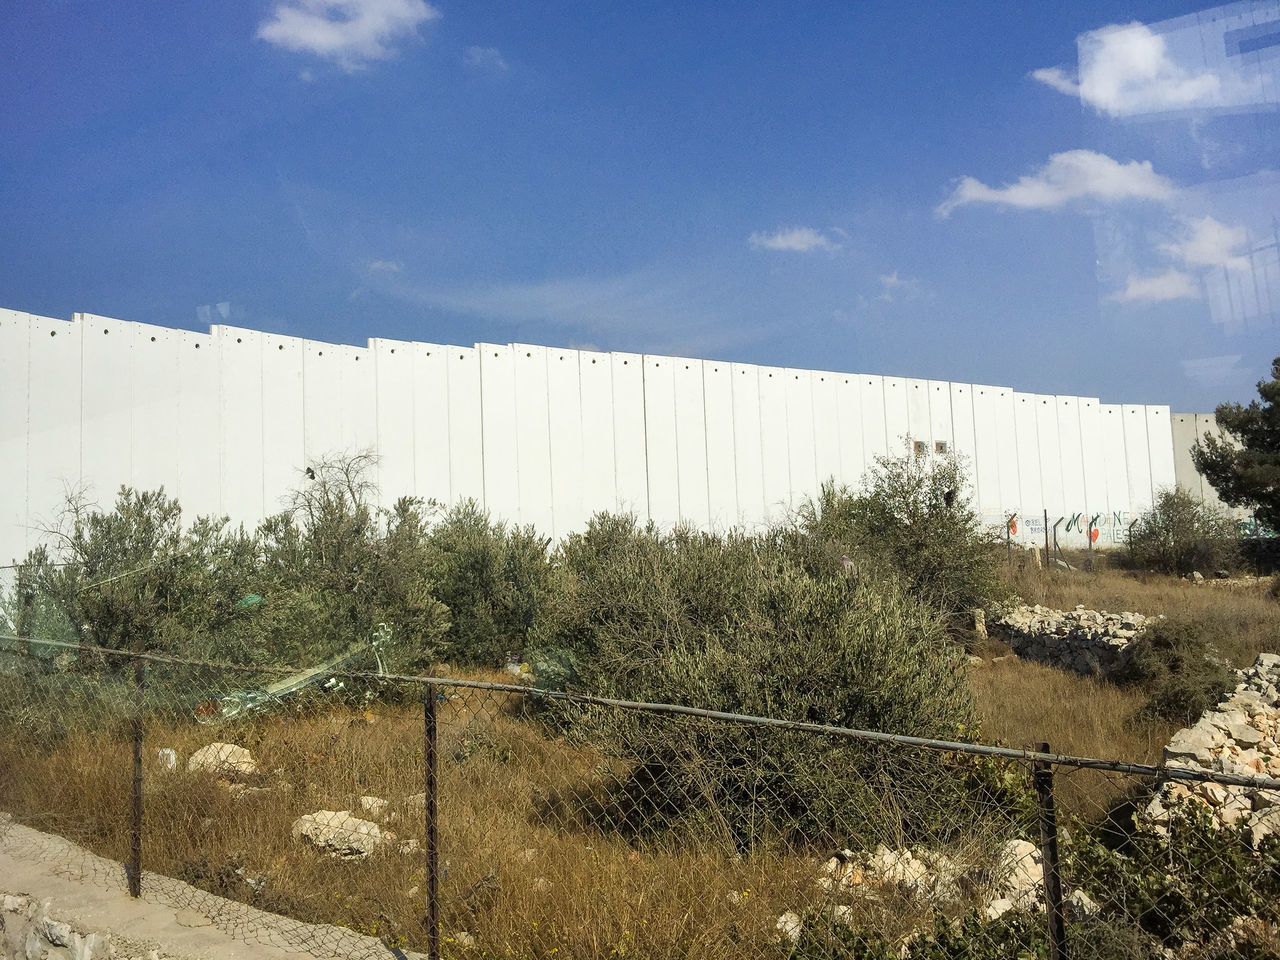 Separation wall between Bethleem and Jerusalem, Israel Barrier Bethlehem Conflict Fence Grass Palestine Separate Separation Wall War West Bank